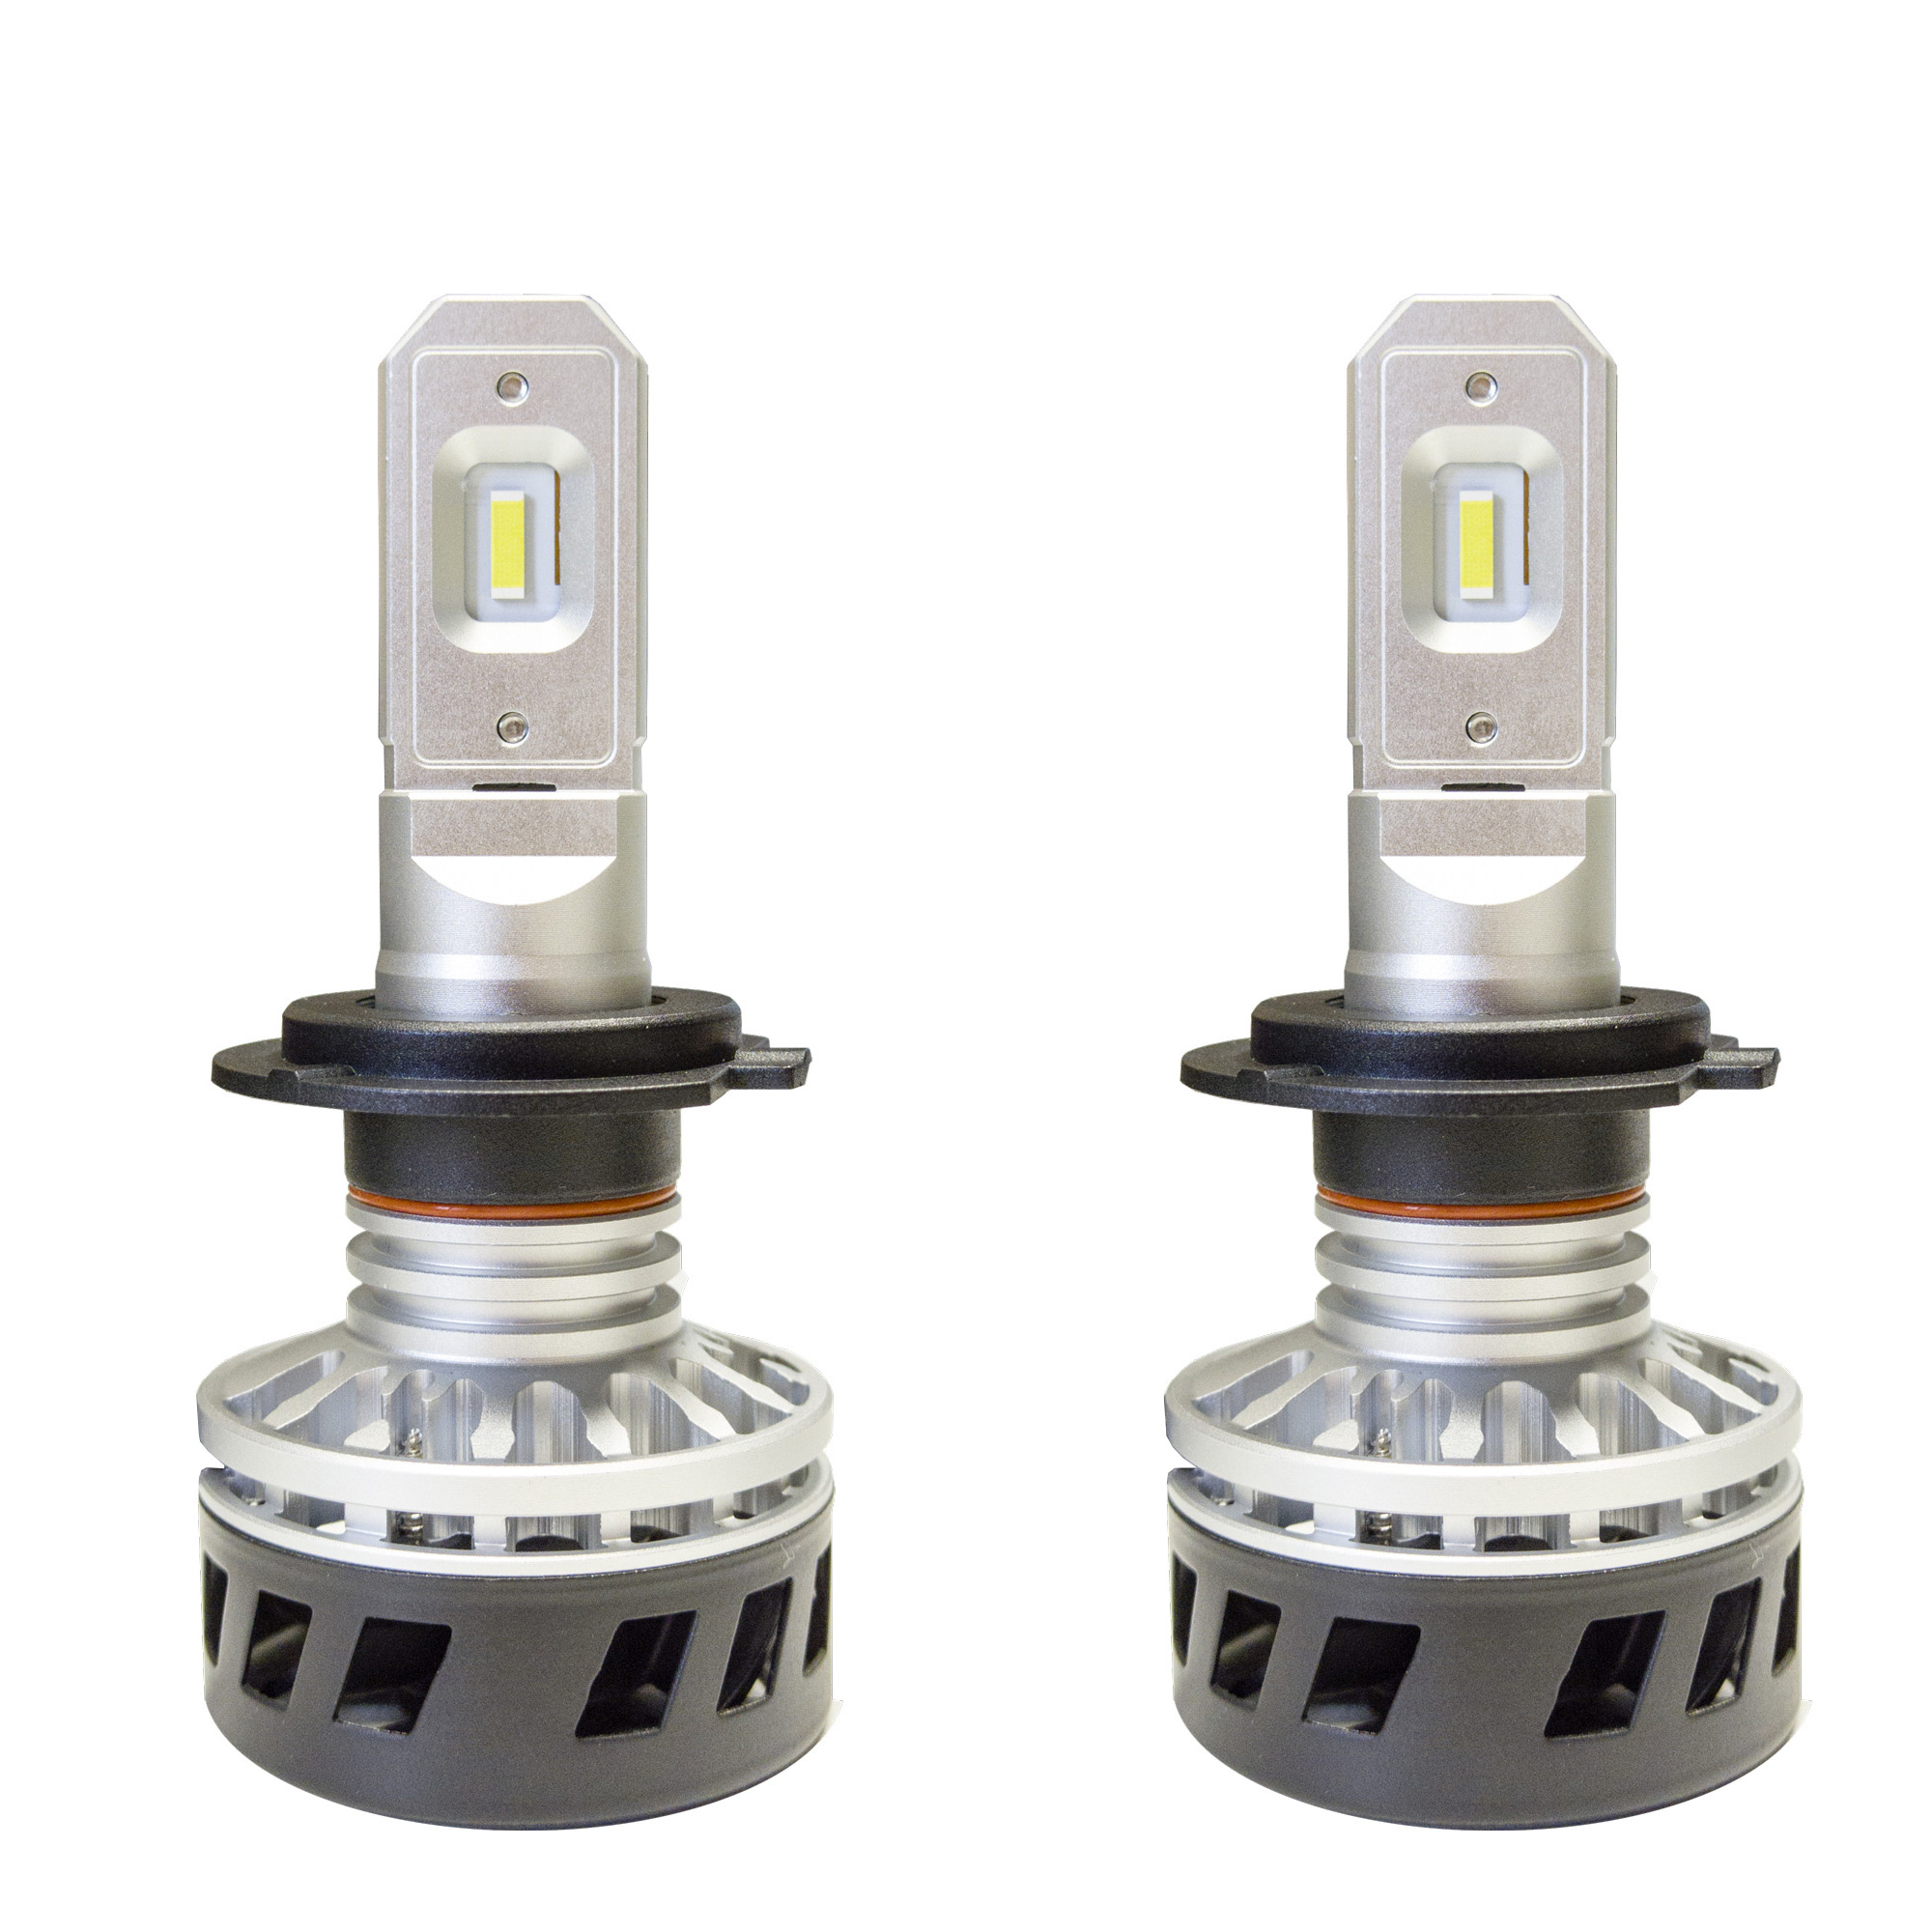 led-convesion-home